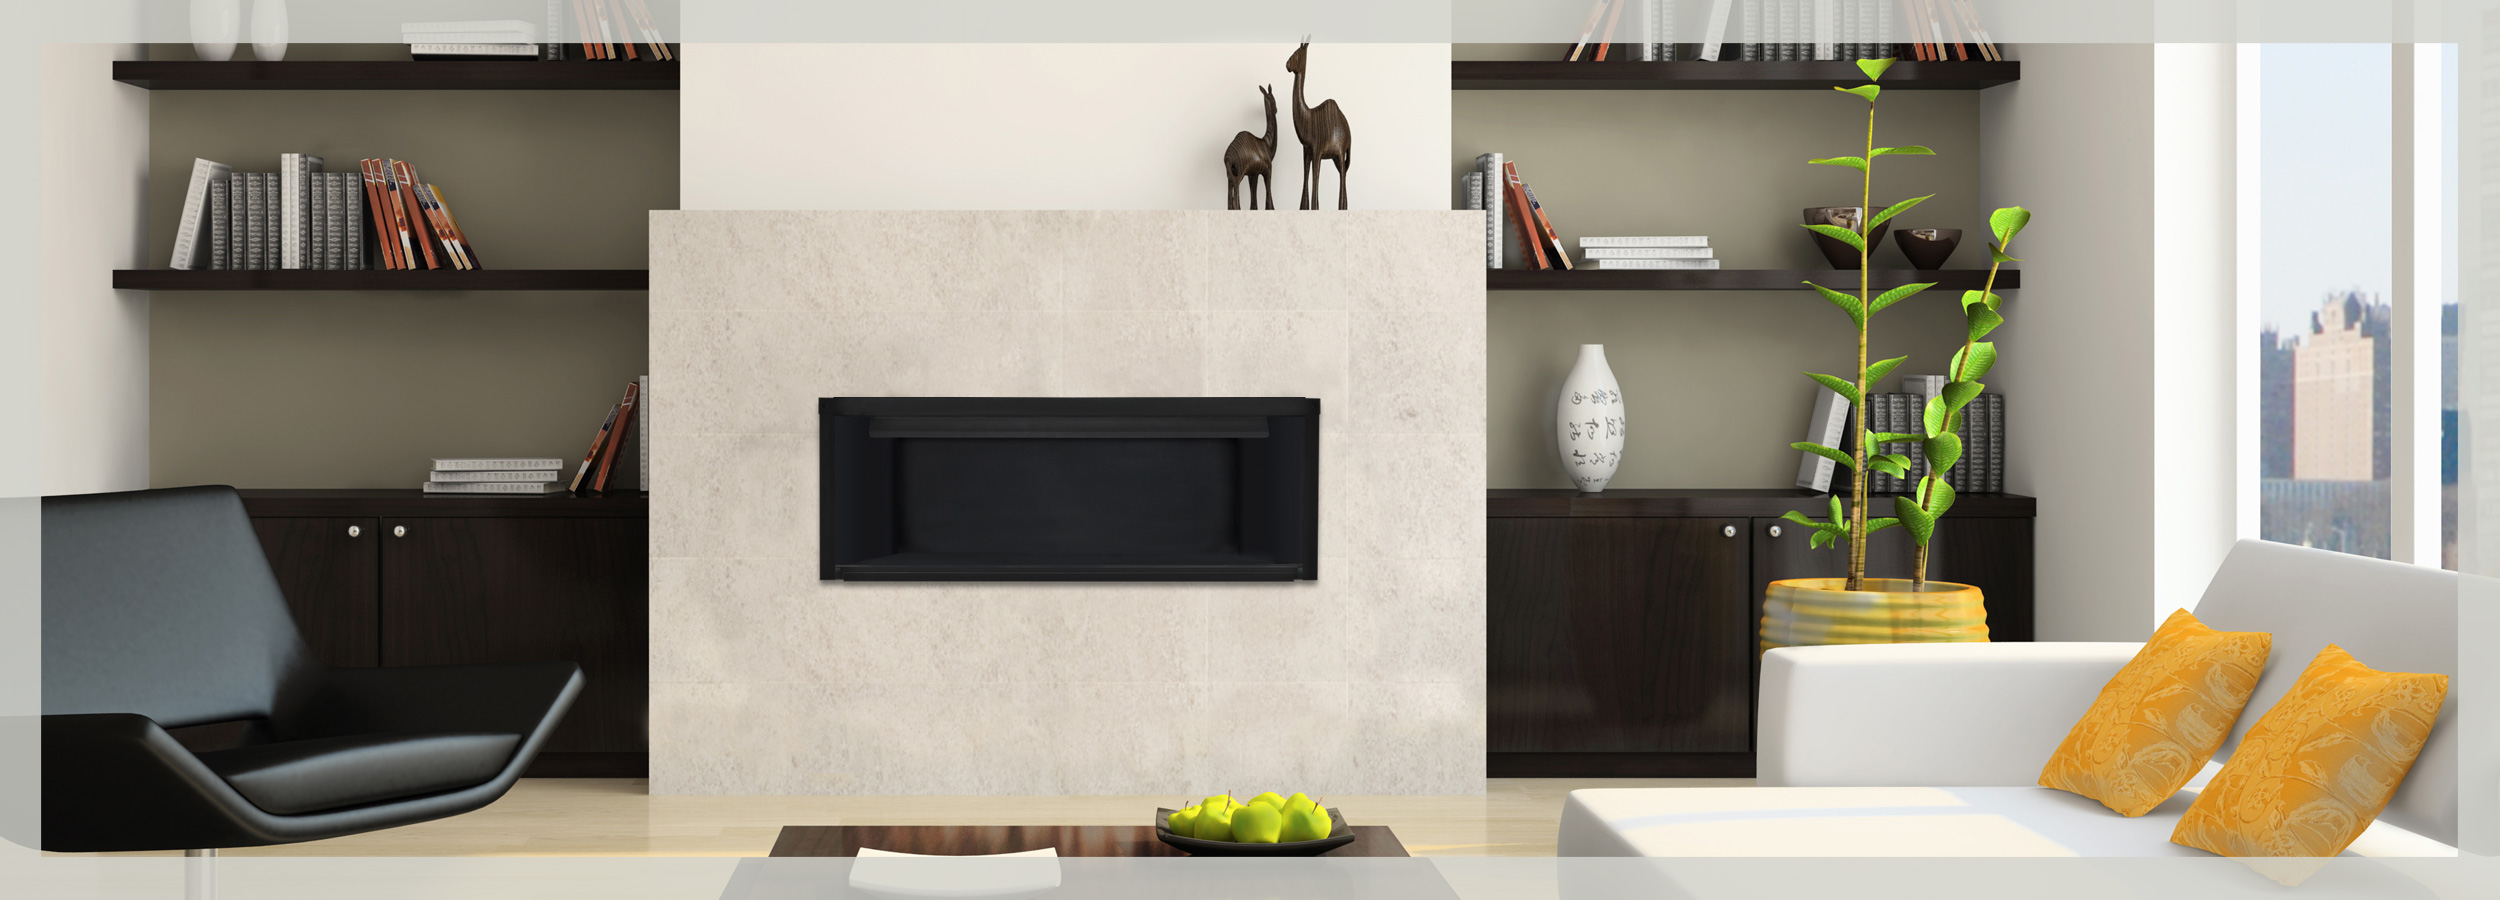 fireplace slider